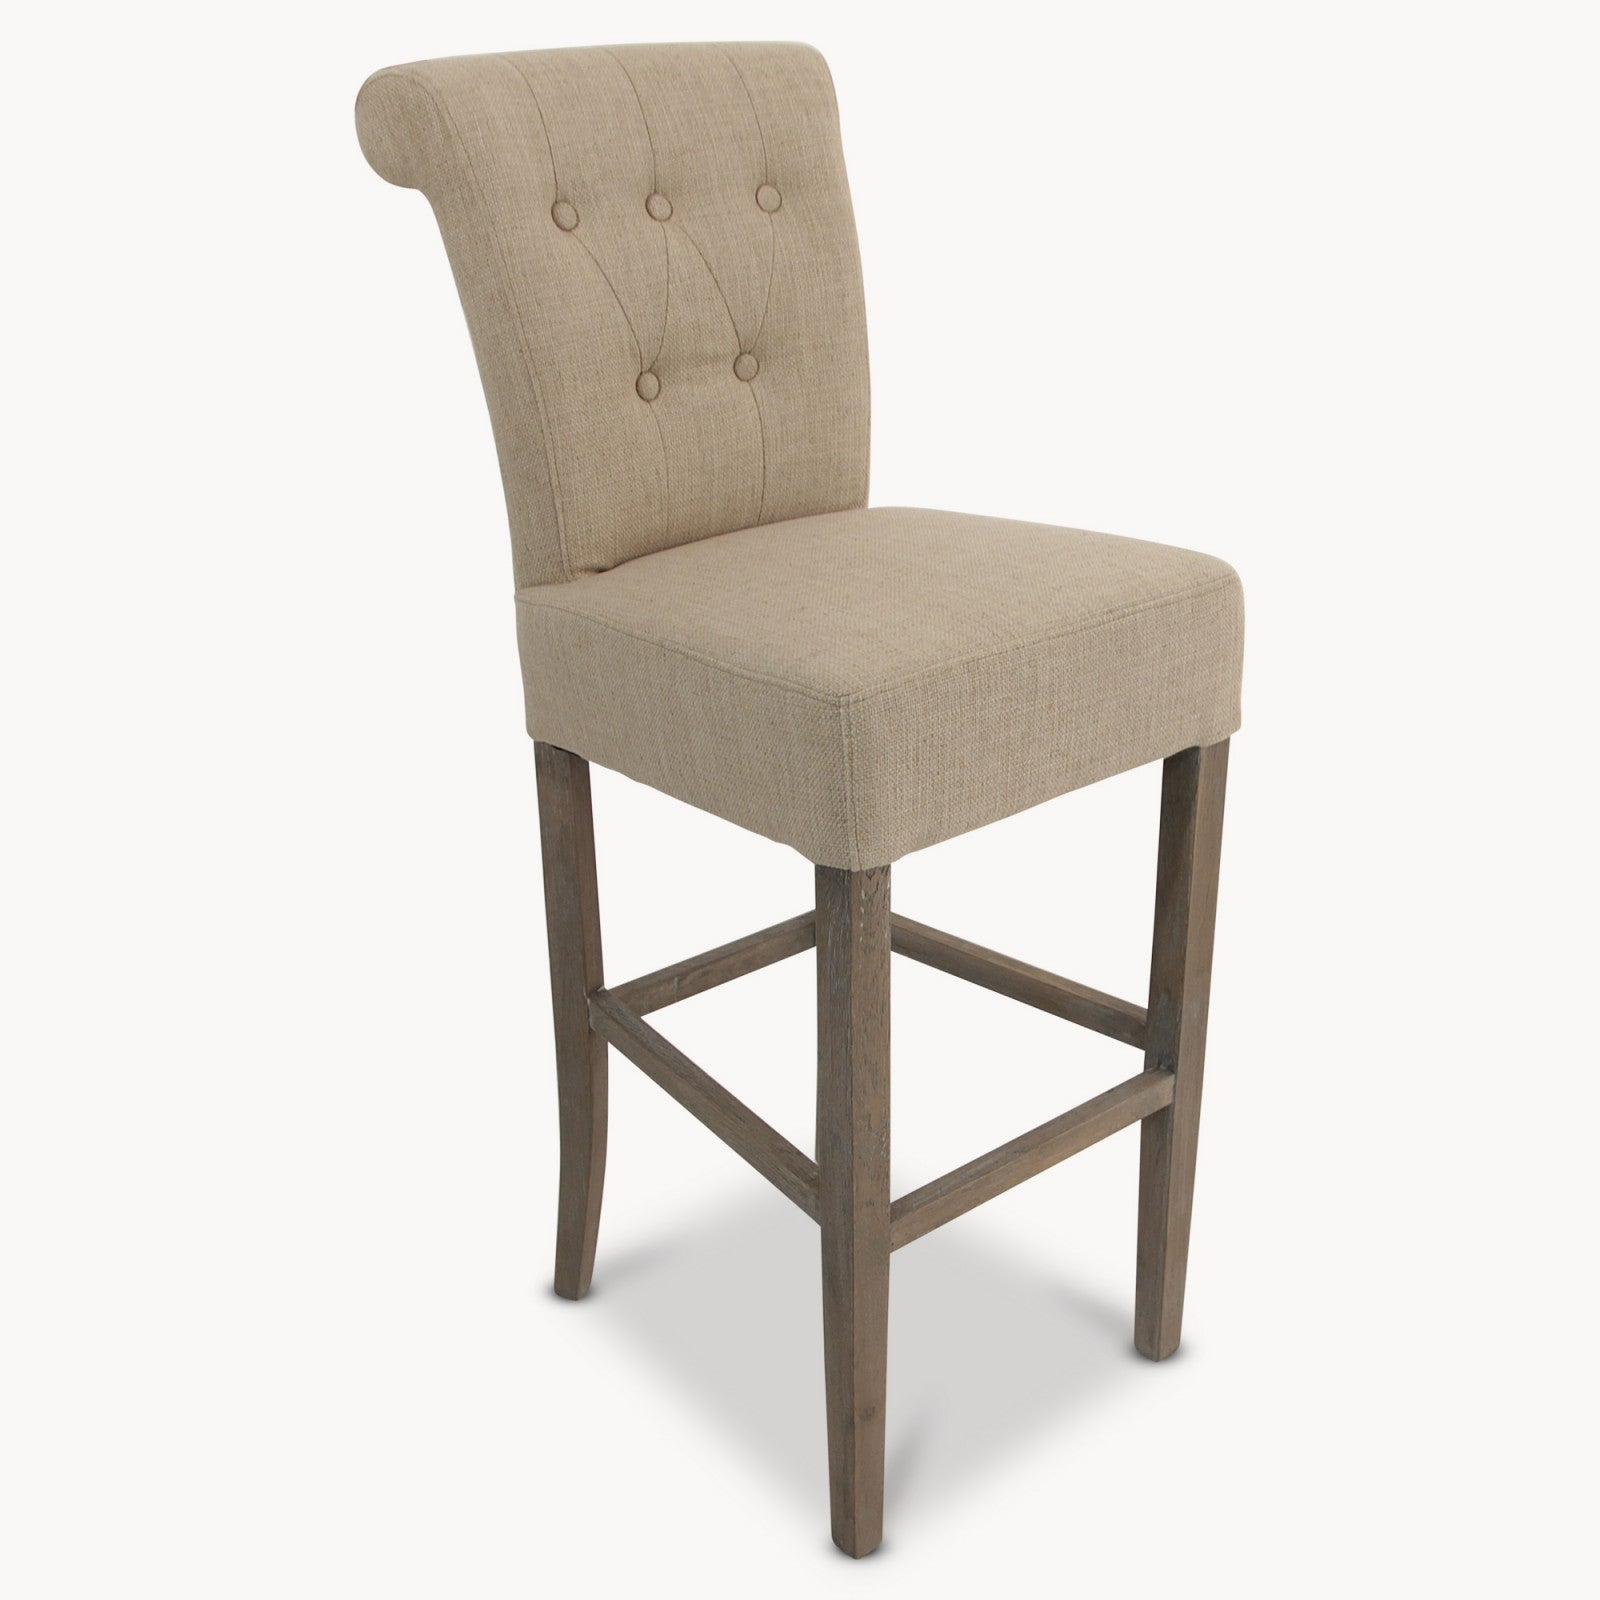 St James Padded Bar Stool / Beige